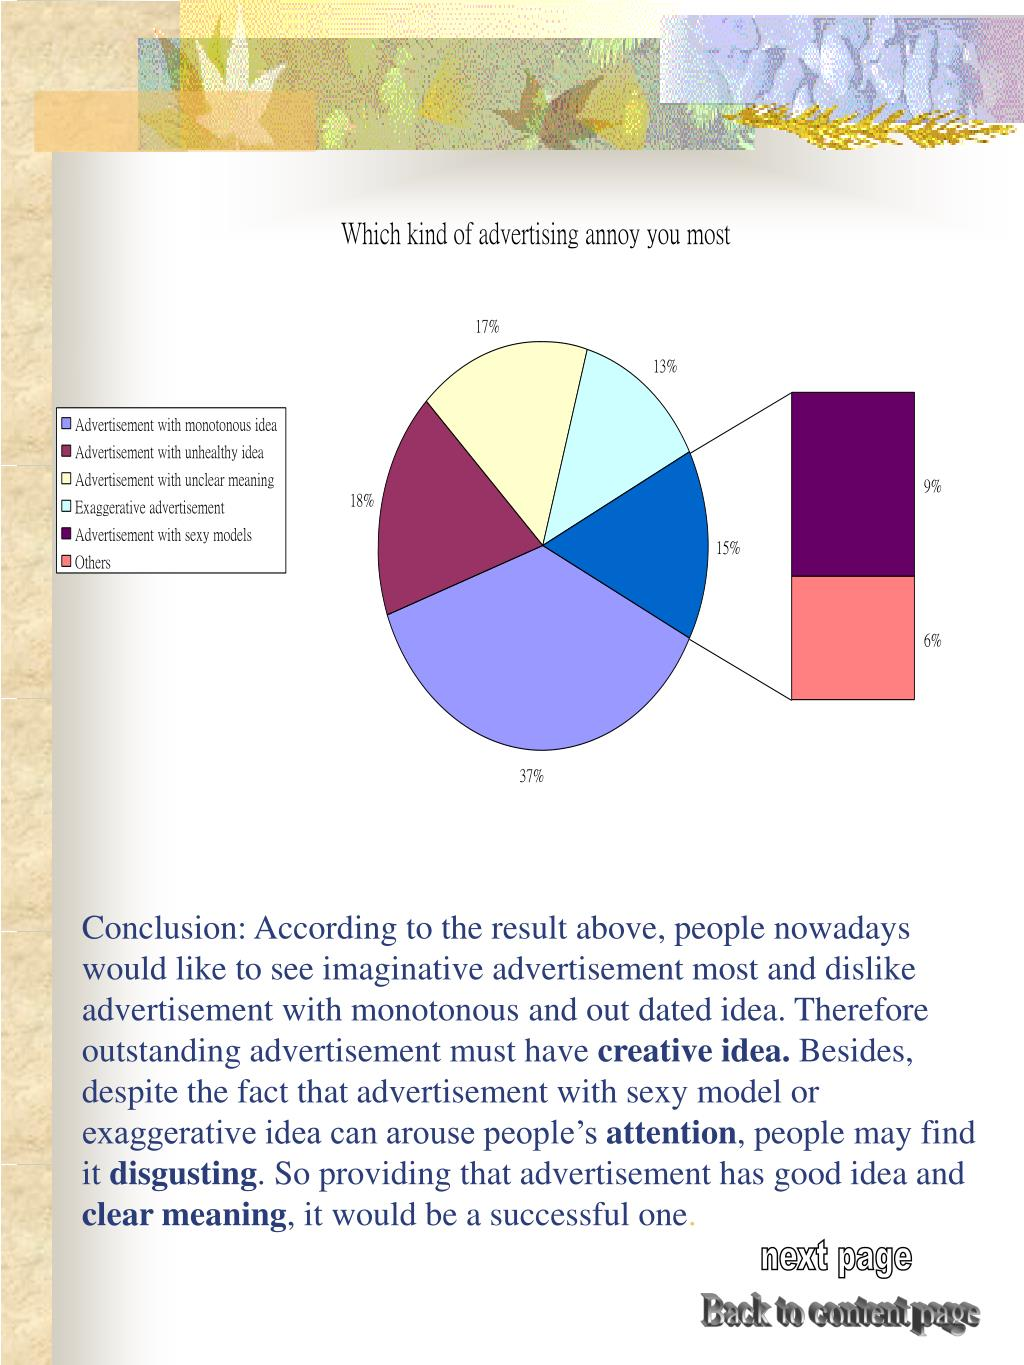 Conclusion: According to the result above, people nowadays would like to see imaginative advertisement most and dislike advertisement with monotonous and out dated idea. Therefore outstanding advertisement must have